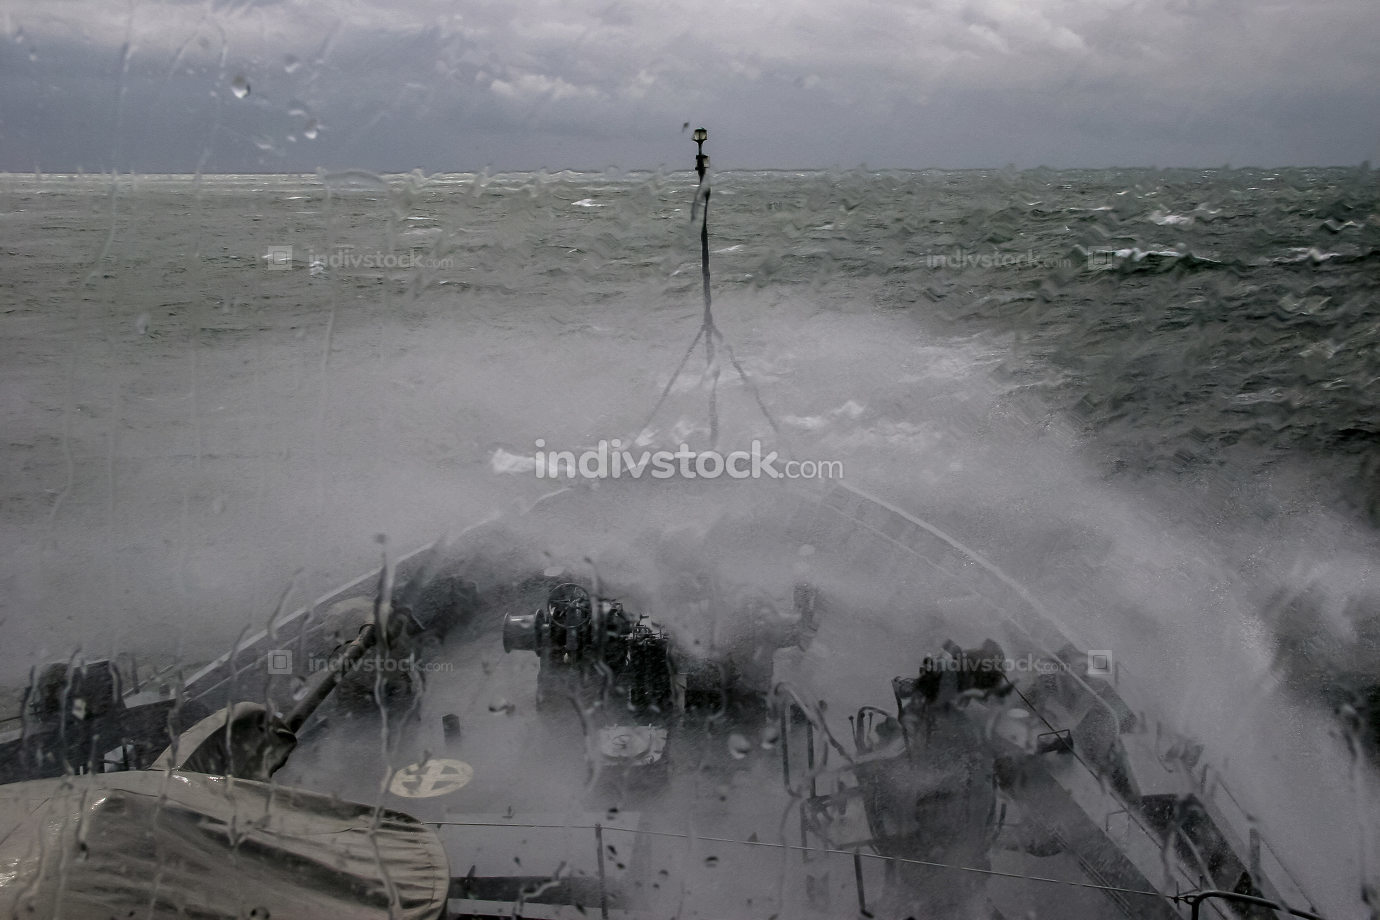 NATO military ship at sea during a storm.